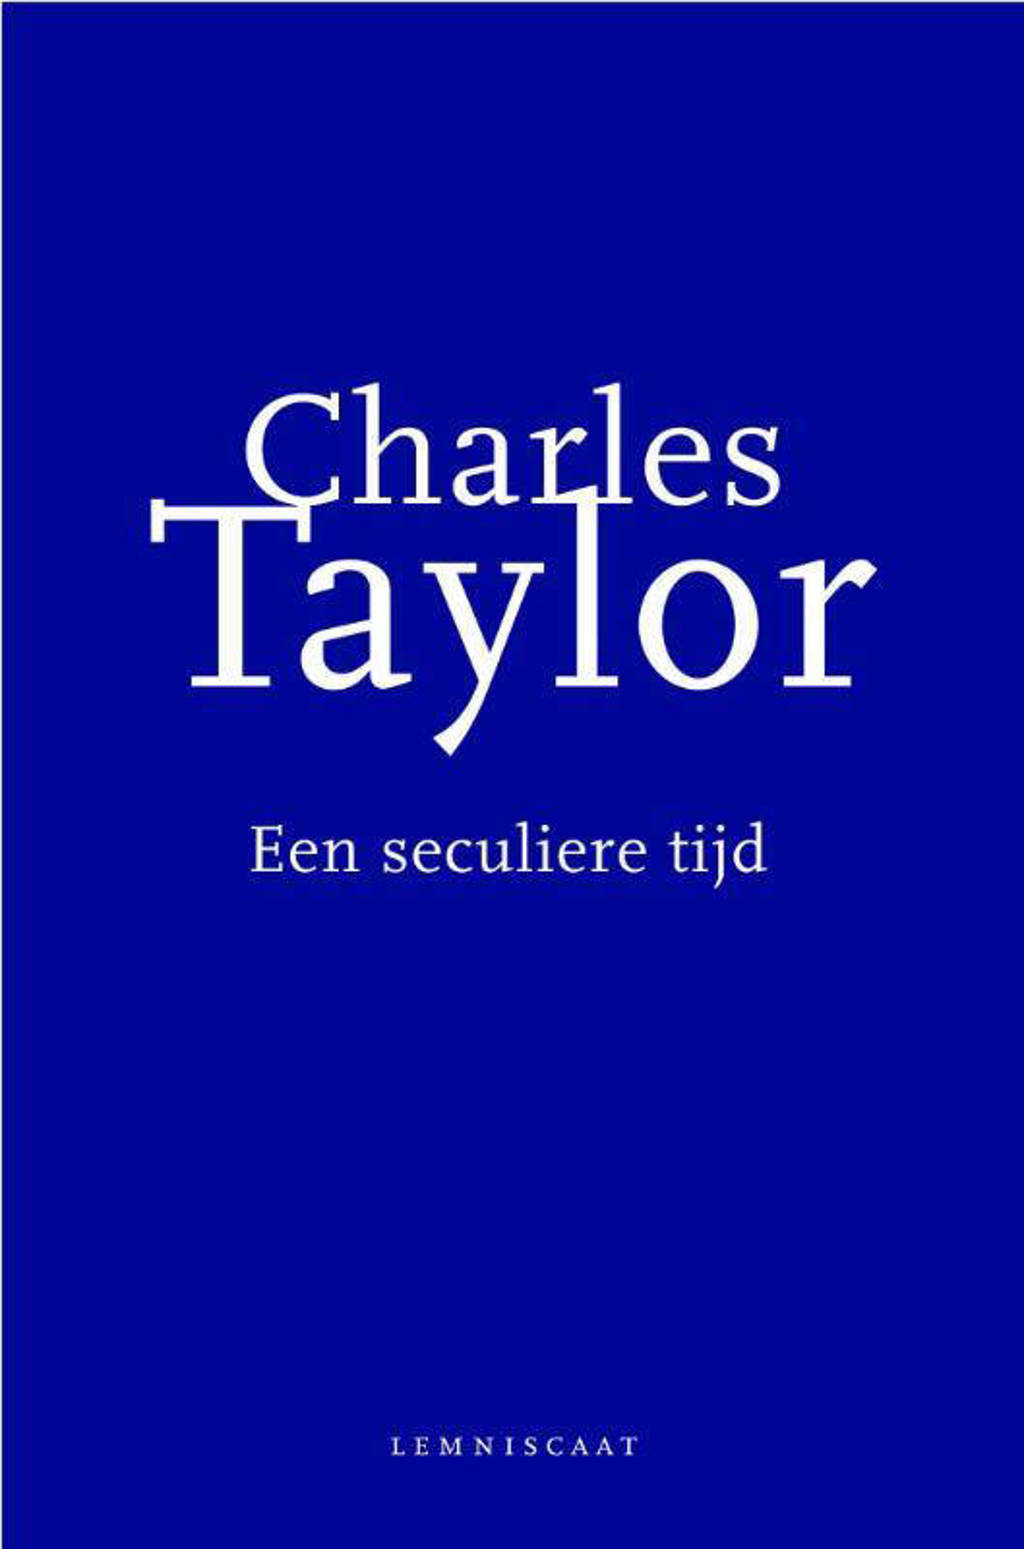 Een seculiere tijd - Charles Taylor